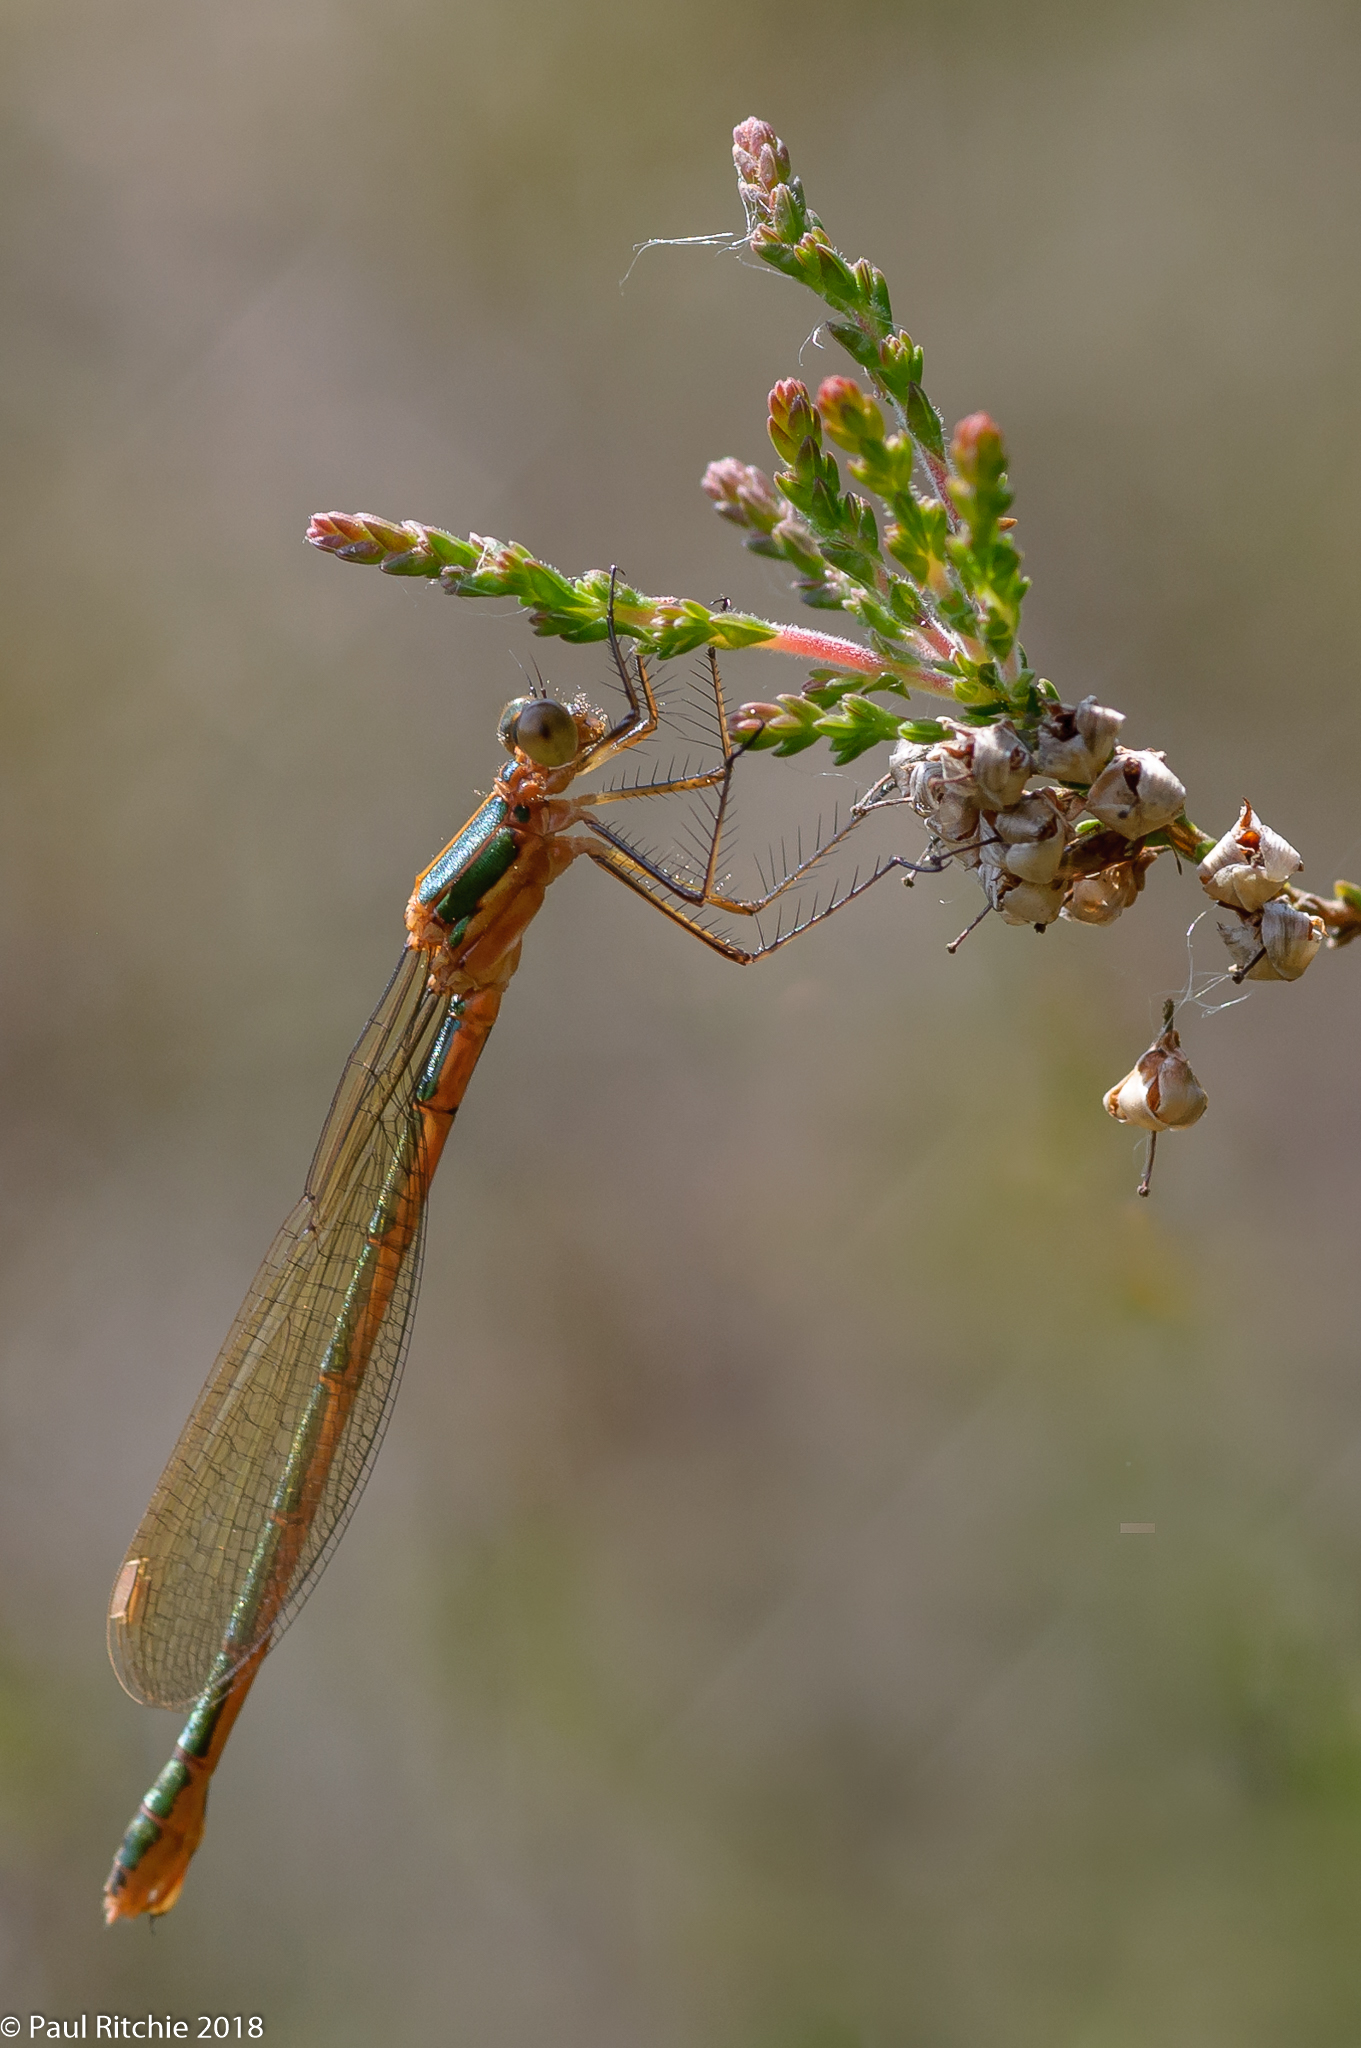 Emerald Damselfy (Lestes sponsa) - immature female